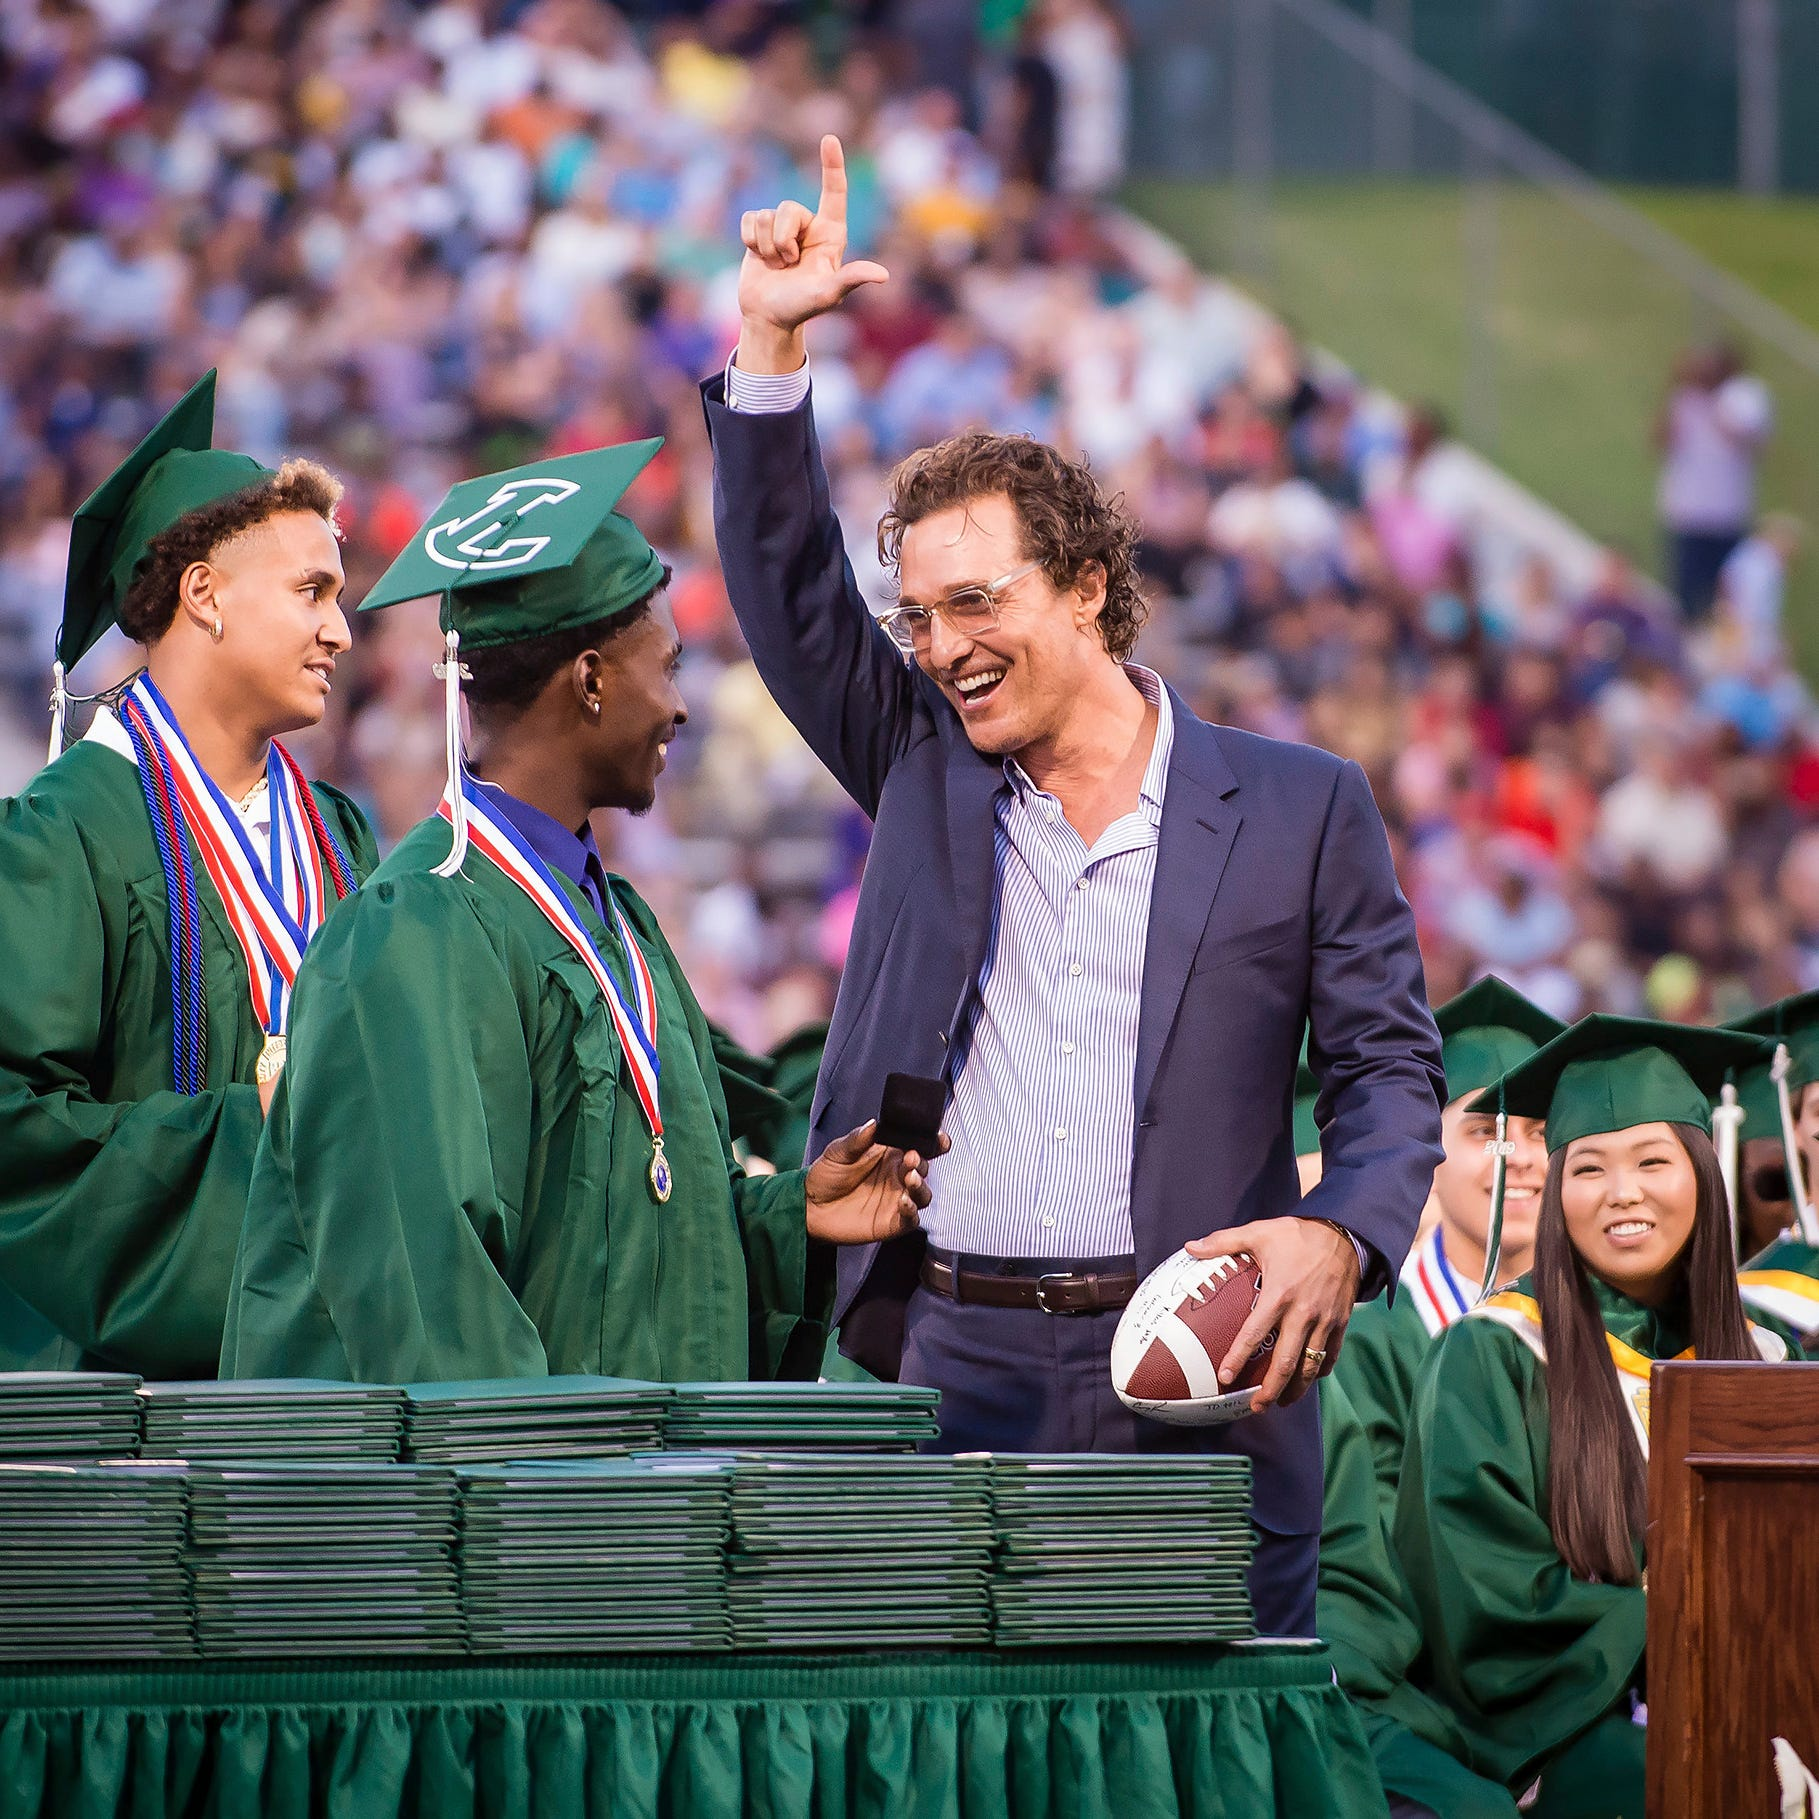 Matthew McConaughey receives high school diploma 31 years after graduating